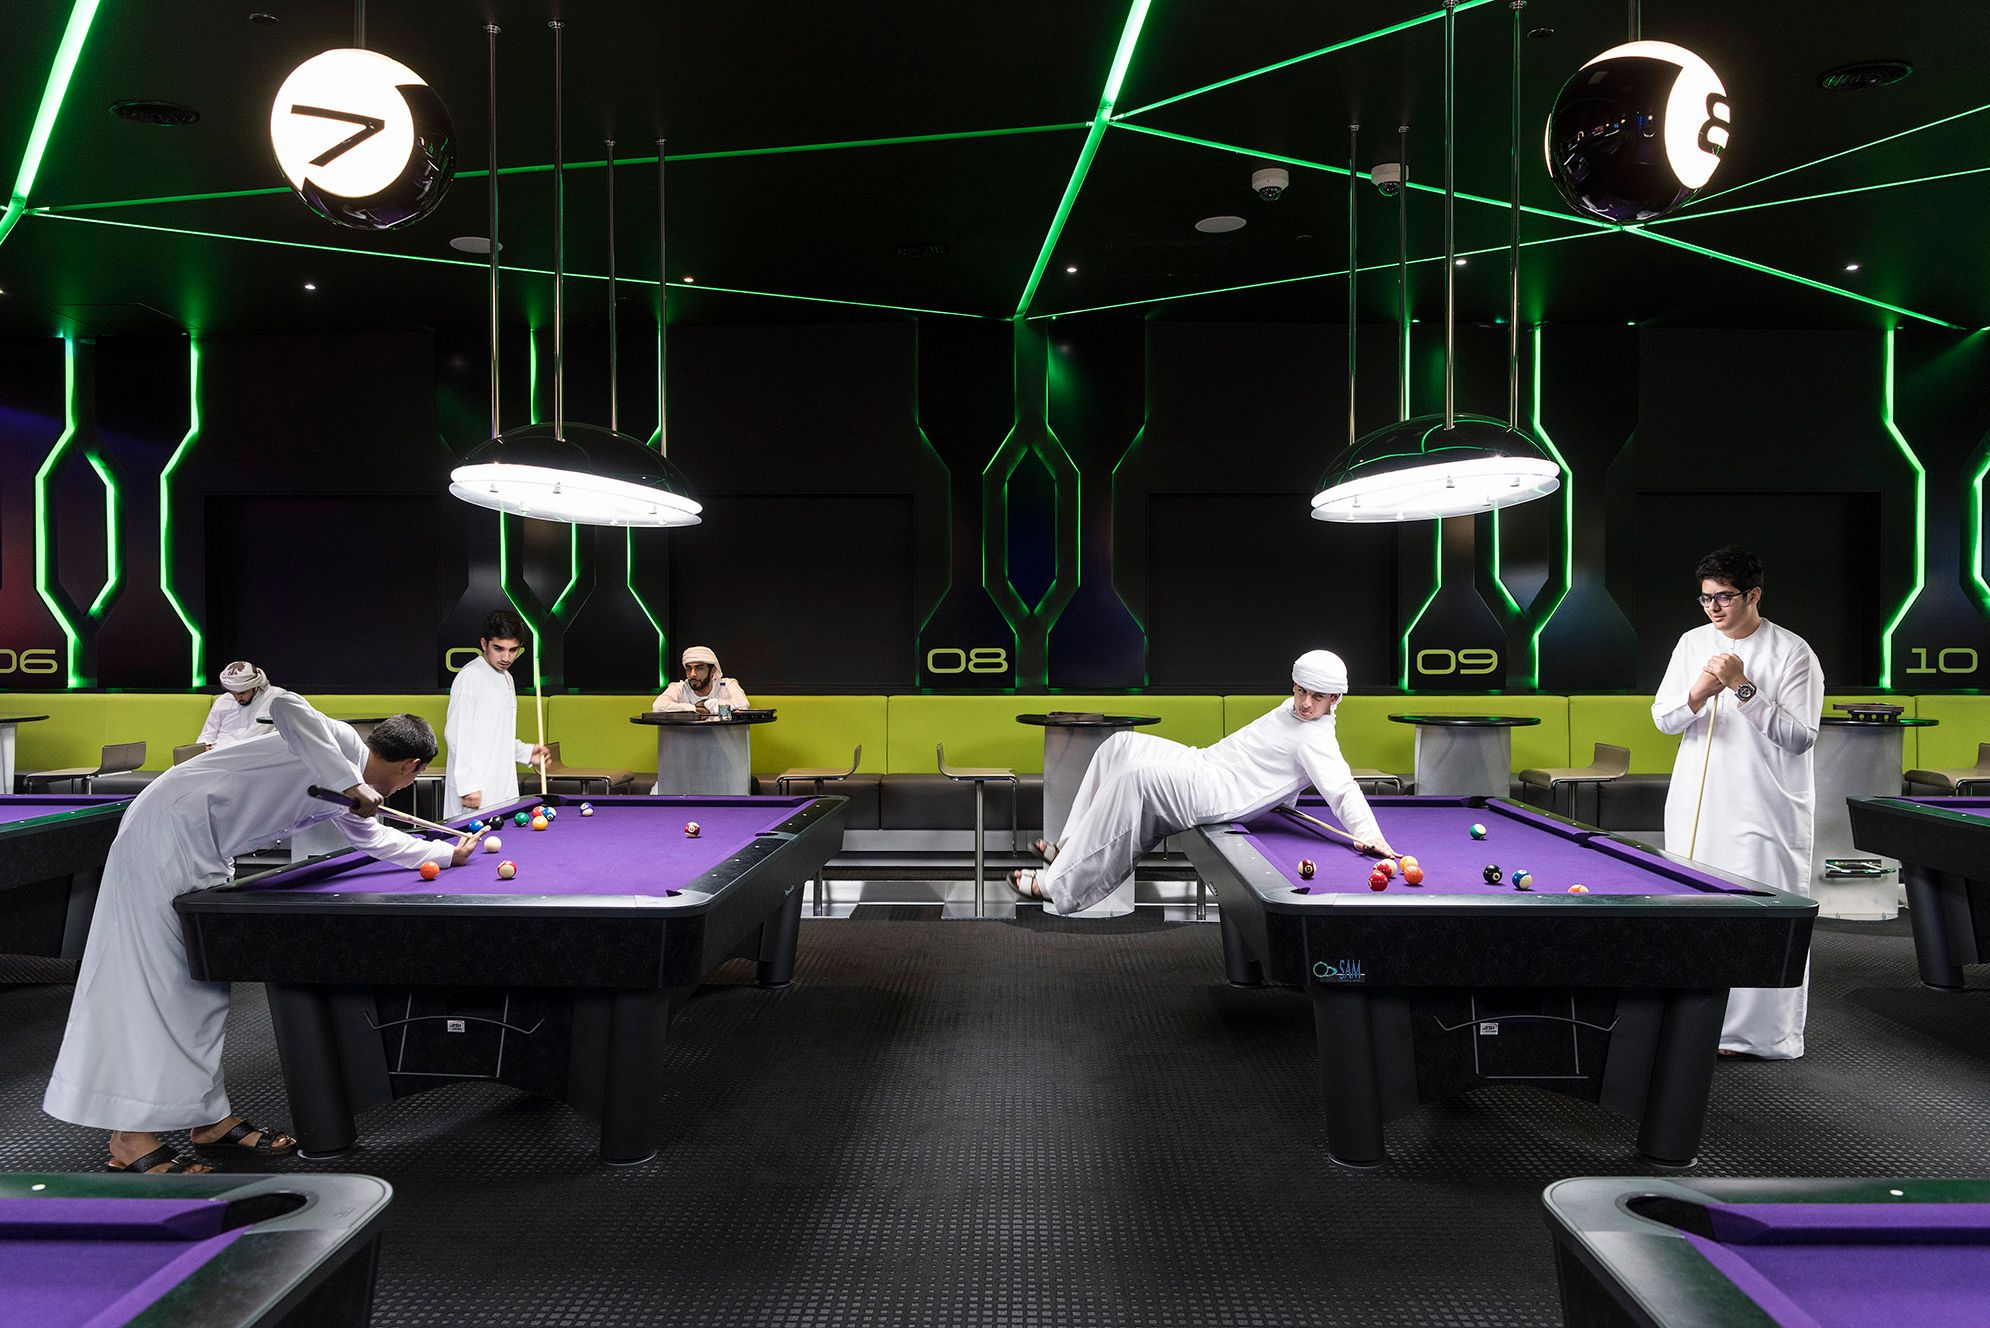 Hub Zero, Dubai, January 2017. Emirati boys playing a game of pool at Hub Zero, an immersive entertainment hub located at City Walk shopping mall. © Nick Hannes. Documentary Series Winner, Magnum Photography Awards 2017.